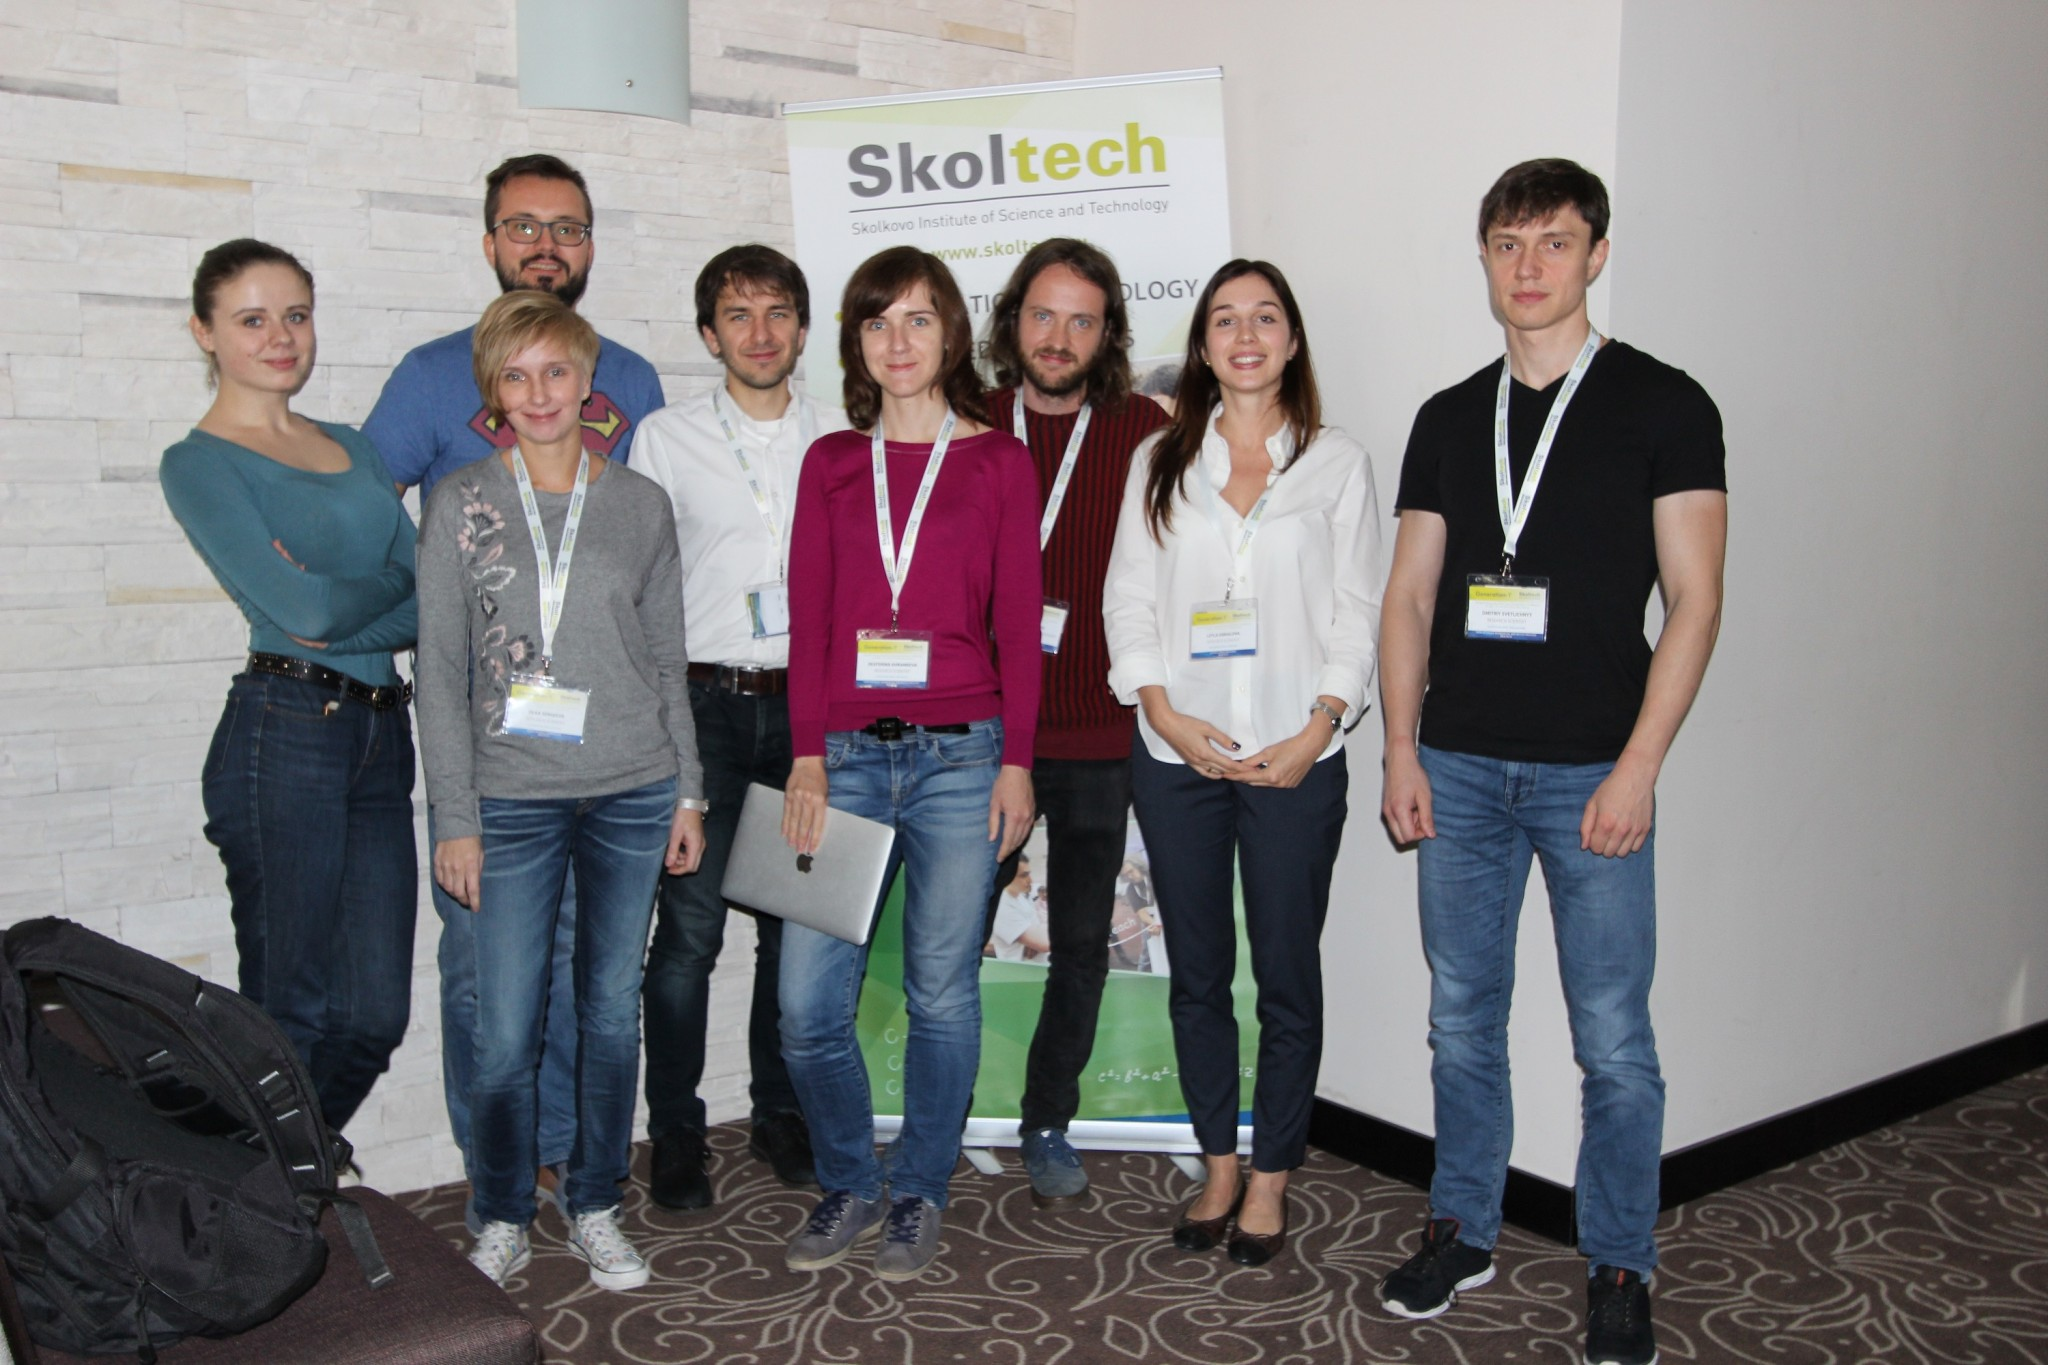 The organizers, who made it all happen. Photo: Skoltech.